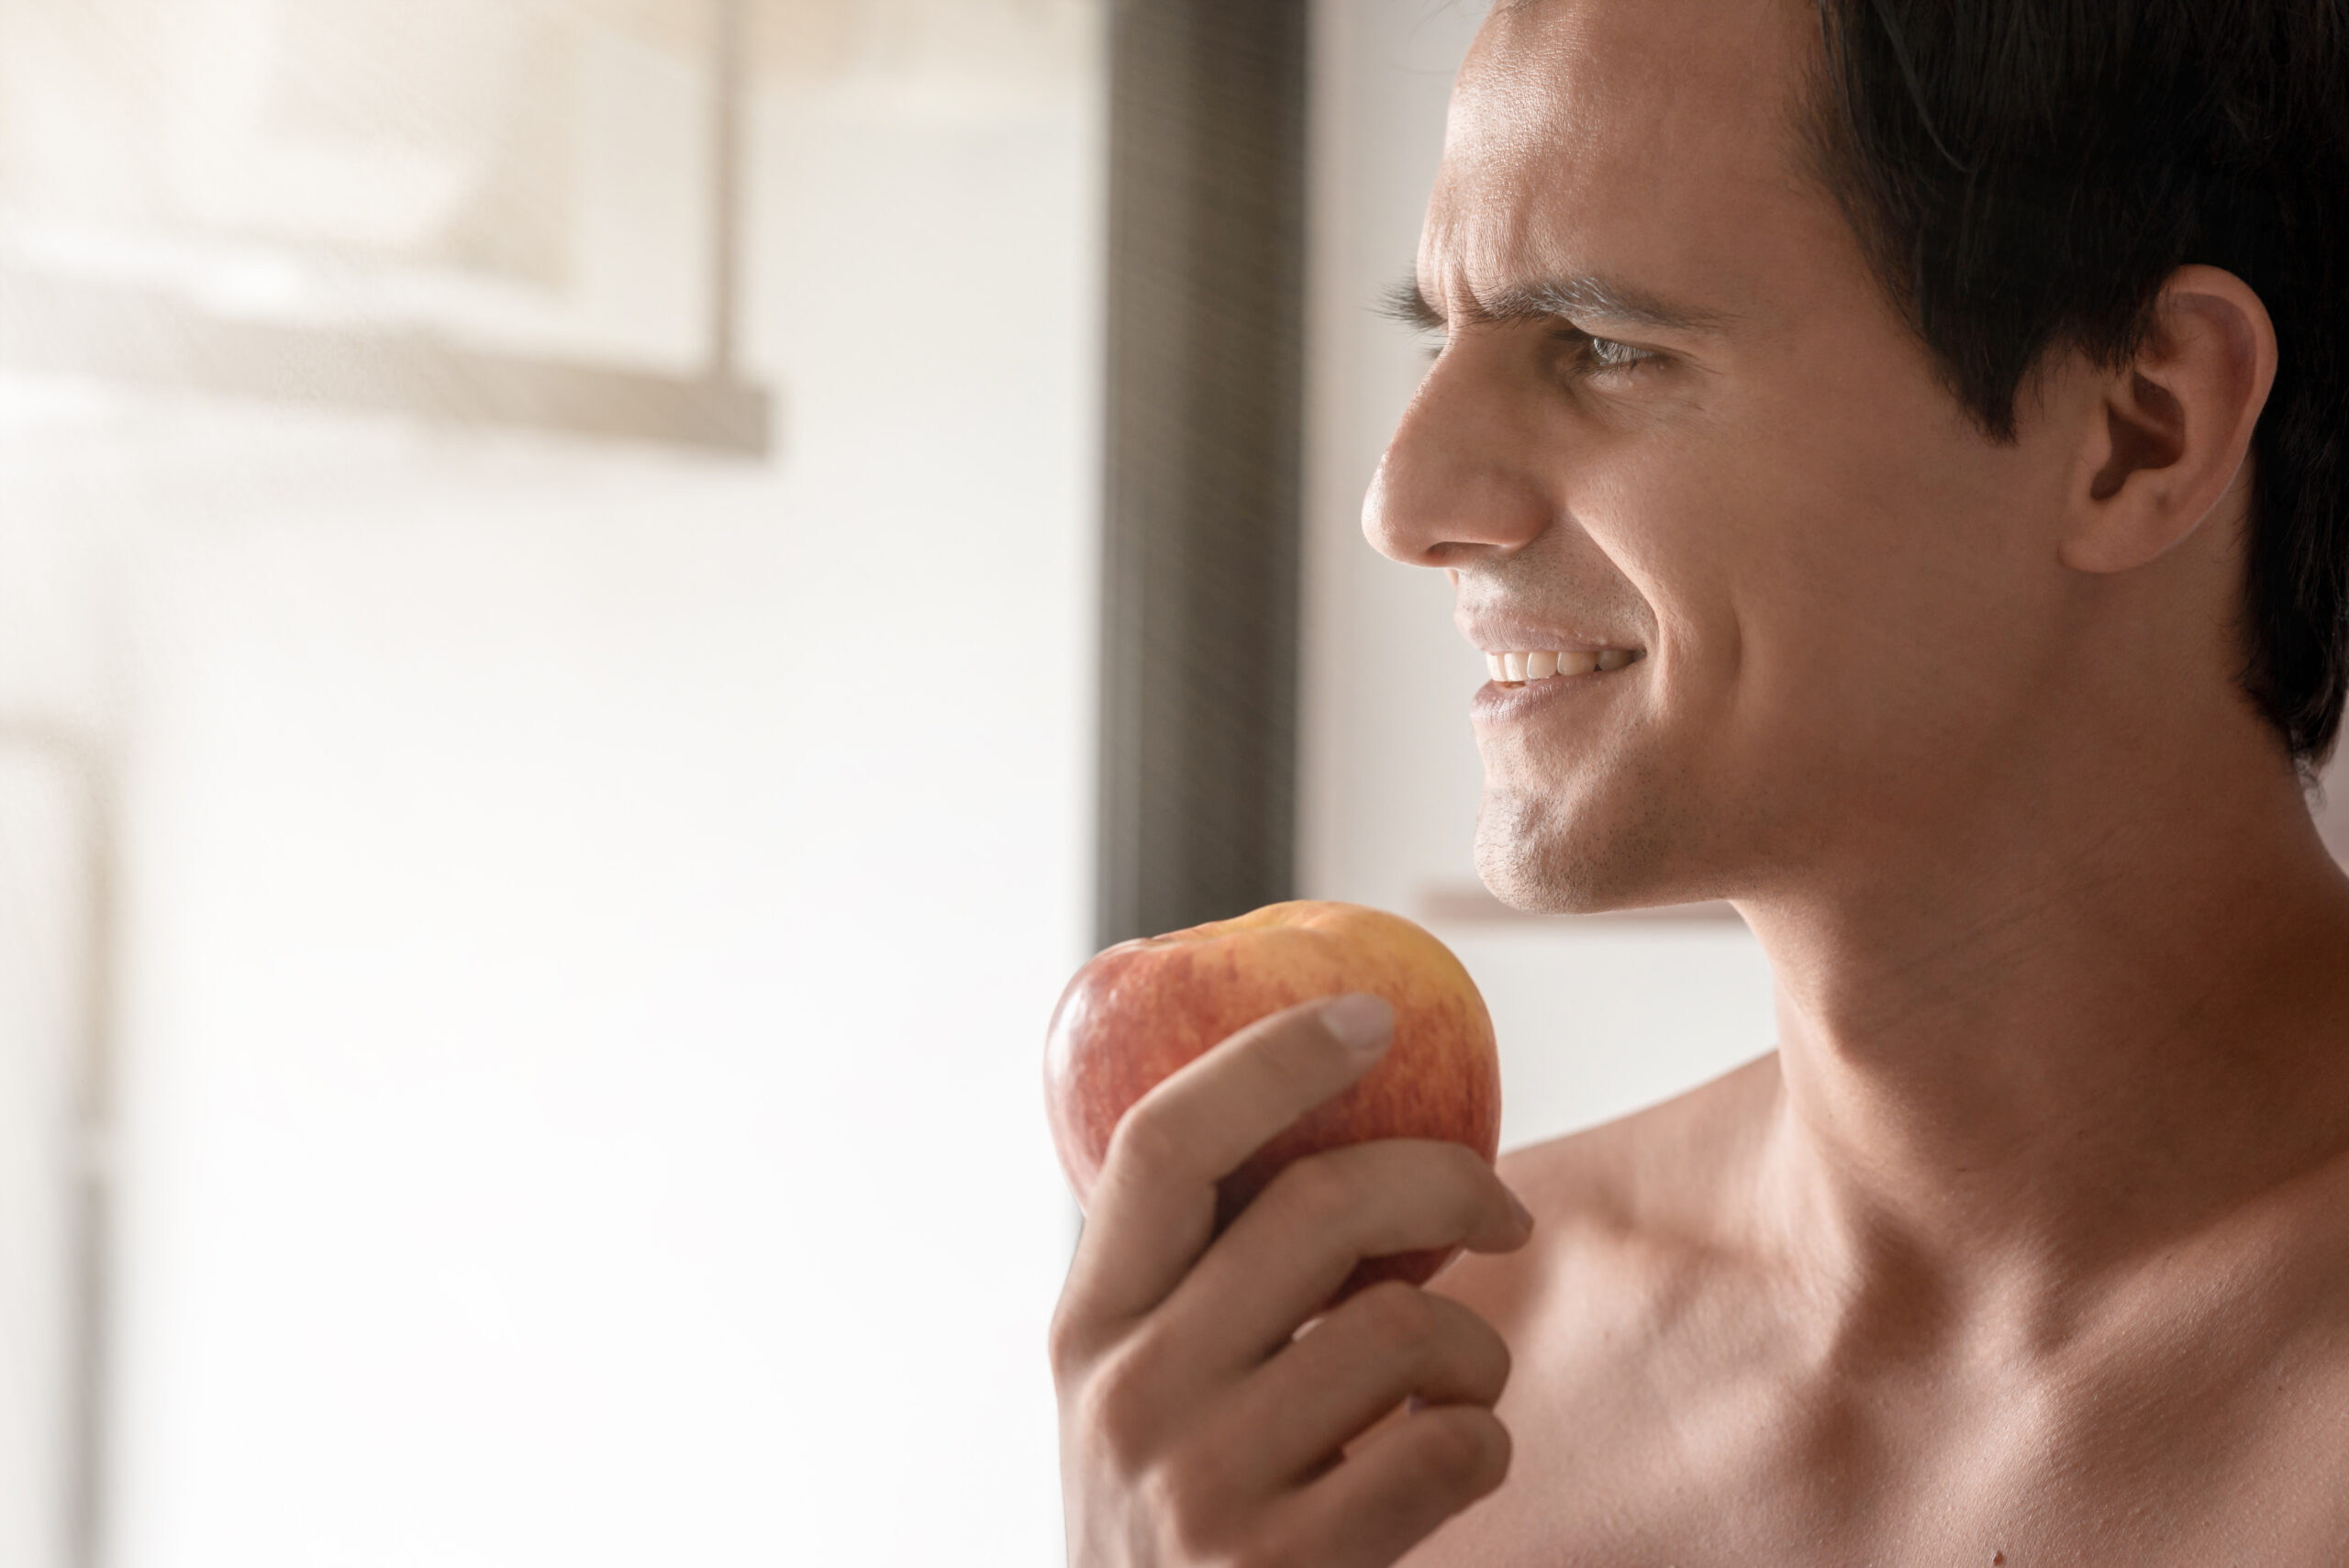 Eat healthy. Man is eating an apple in the morning. Concept of health and diet. Copy space on the left side